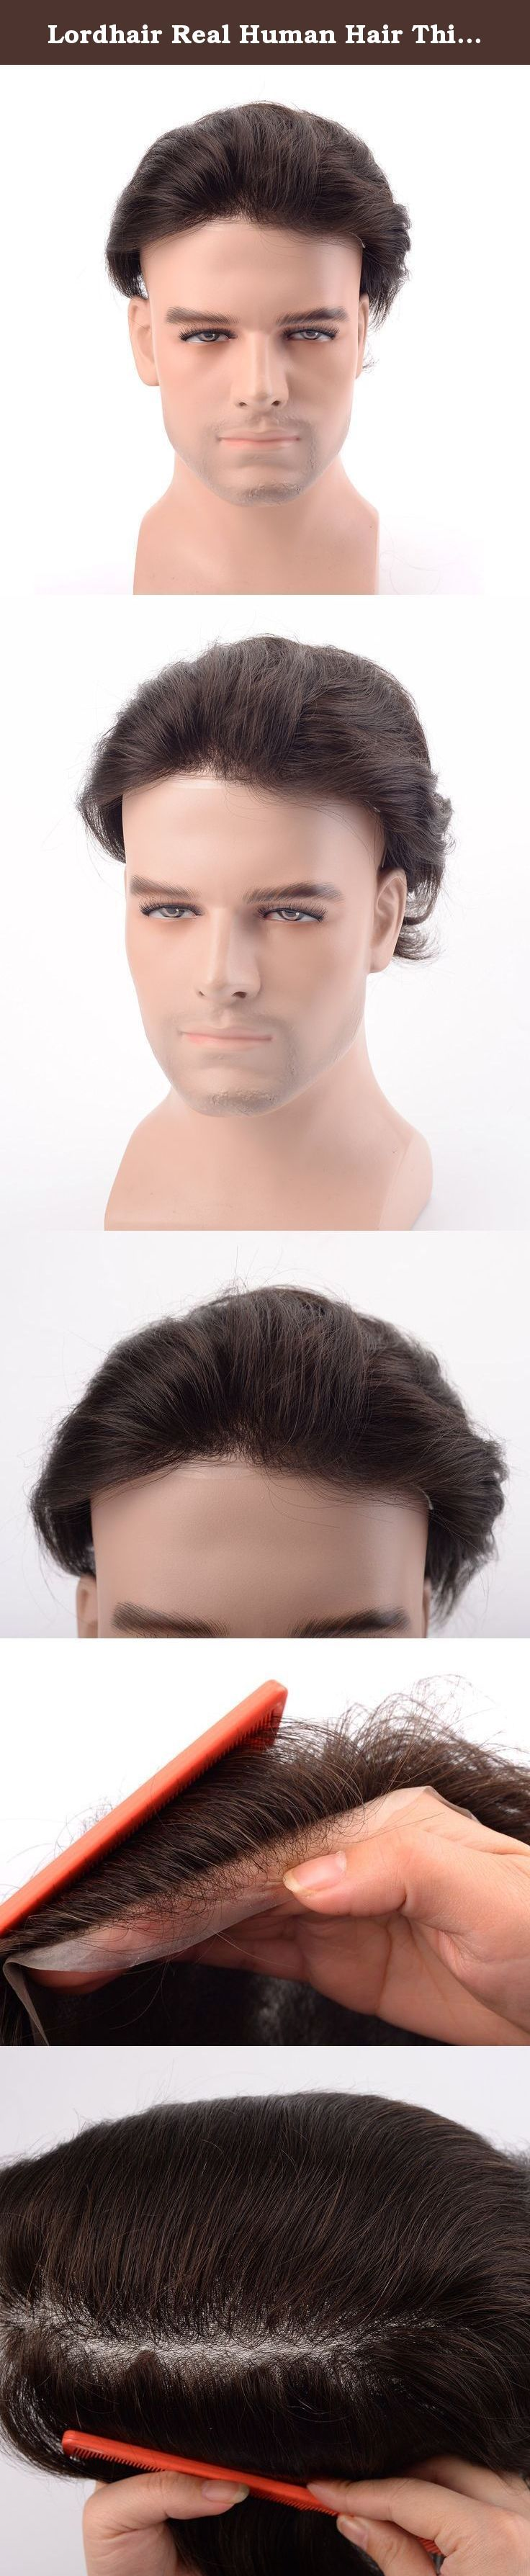 "Lordhair Real Human Hair Thin Skin Men's Toupee For Men V-looped Hair Color 1B# Off Black Hair Pieces For Men. Lordhair Real Human Hair Super Thin Skin Men's Toupee FAQ: 1. Default Cap Size is 8""X10""Cap 2. The hair could be cut and styled according to your choice. 3.HAIR Type:human hair,(HUMAN HAIR will show white smoke while burning and will turn to ASH; Synthetic hair will show black smoke and will be a sticky ball after burning) Length:5- 6 Inches (Stretching the hair to be STRAIGHT…"